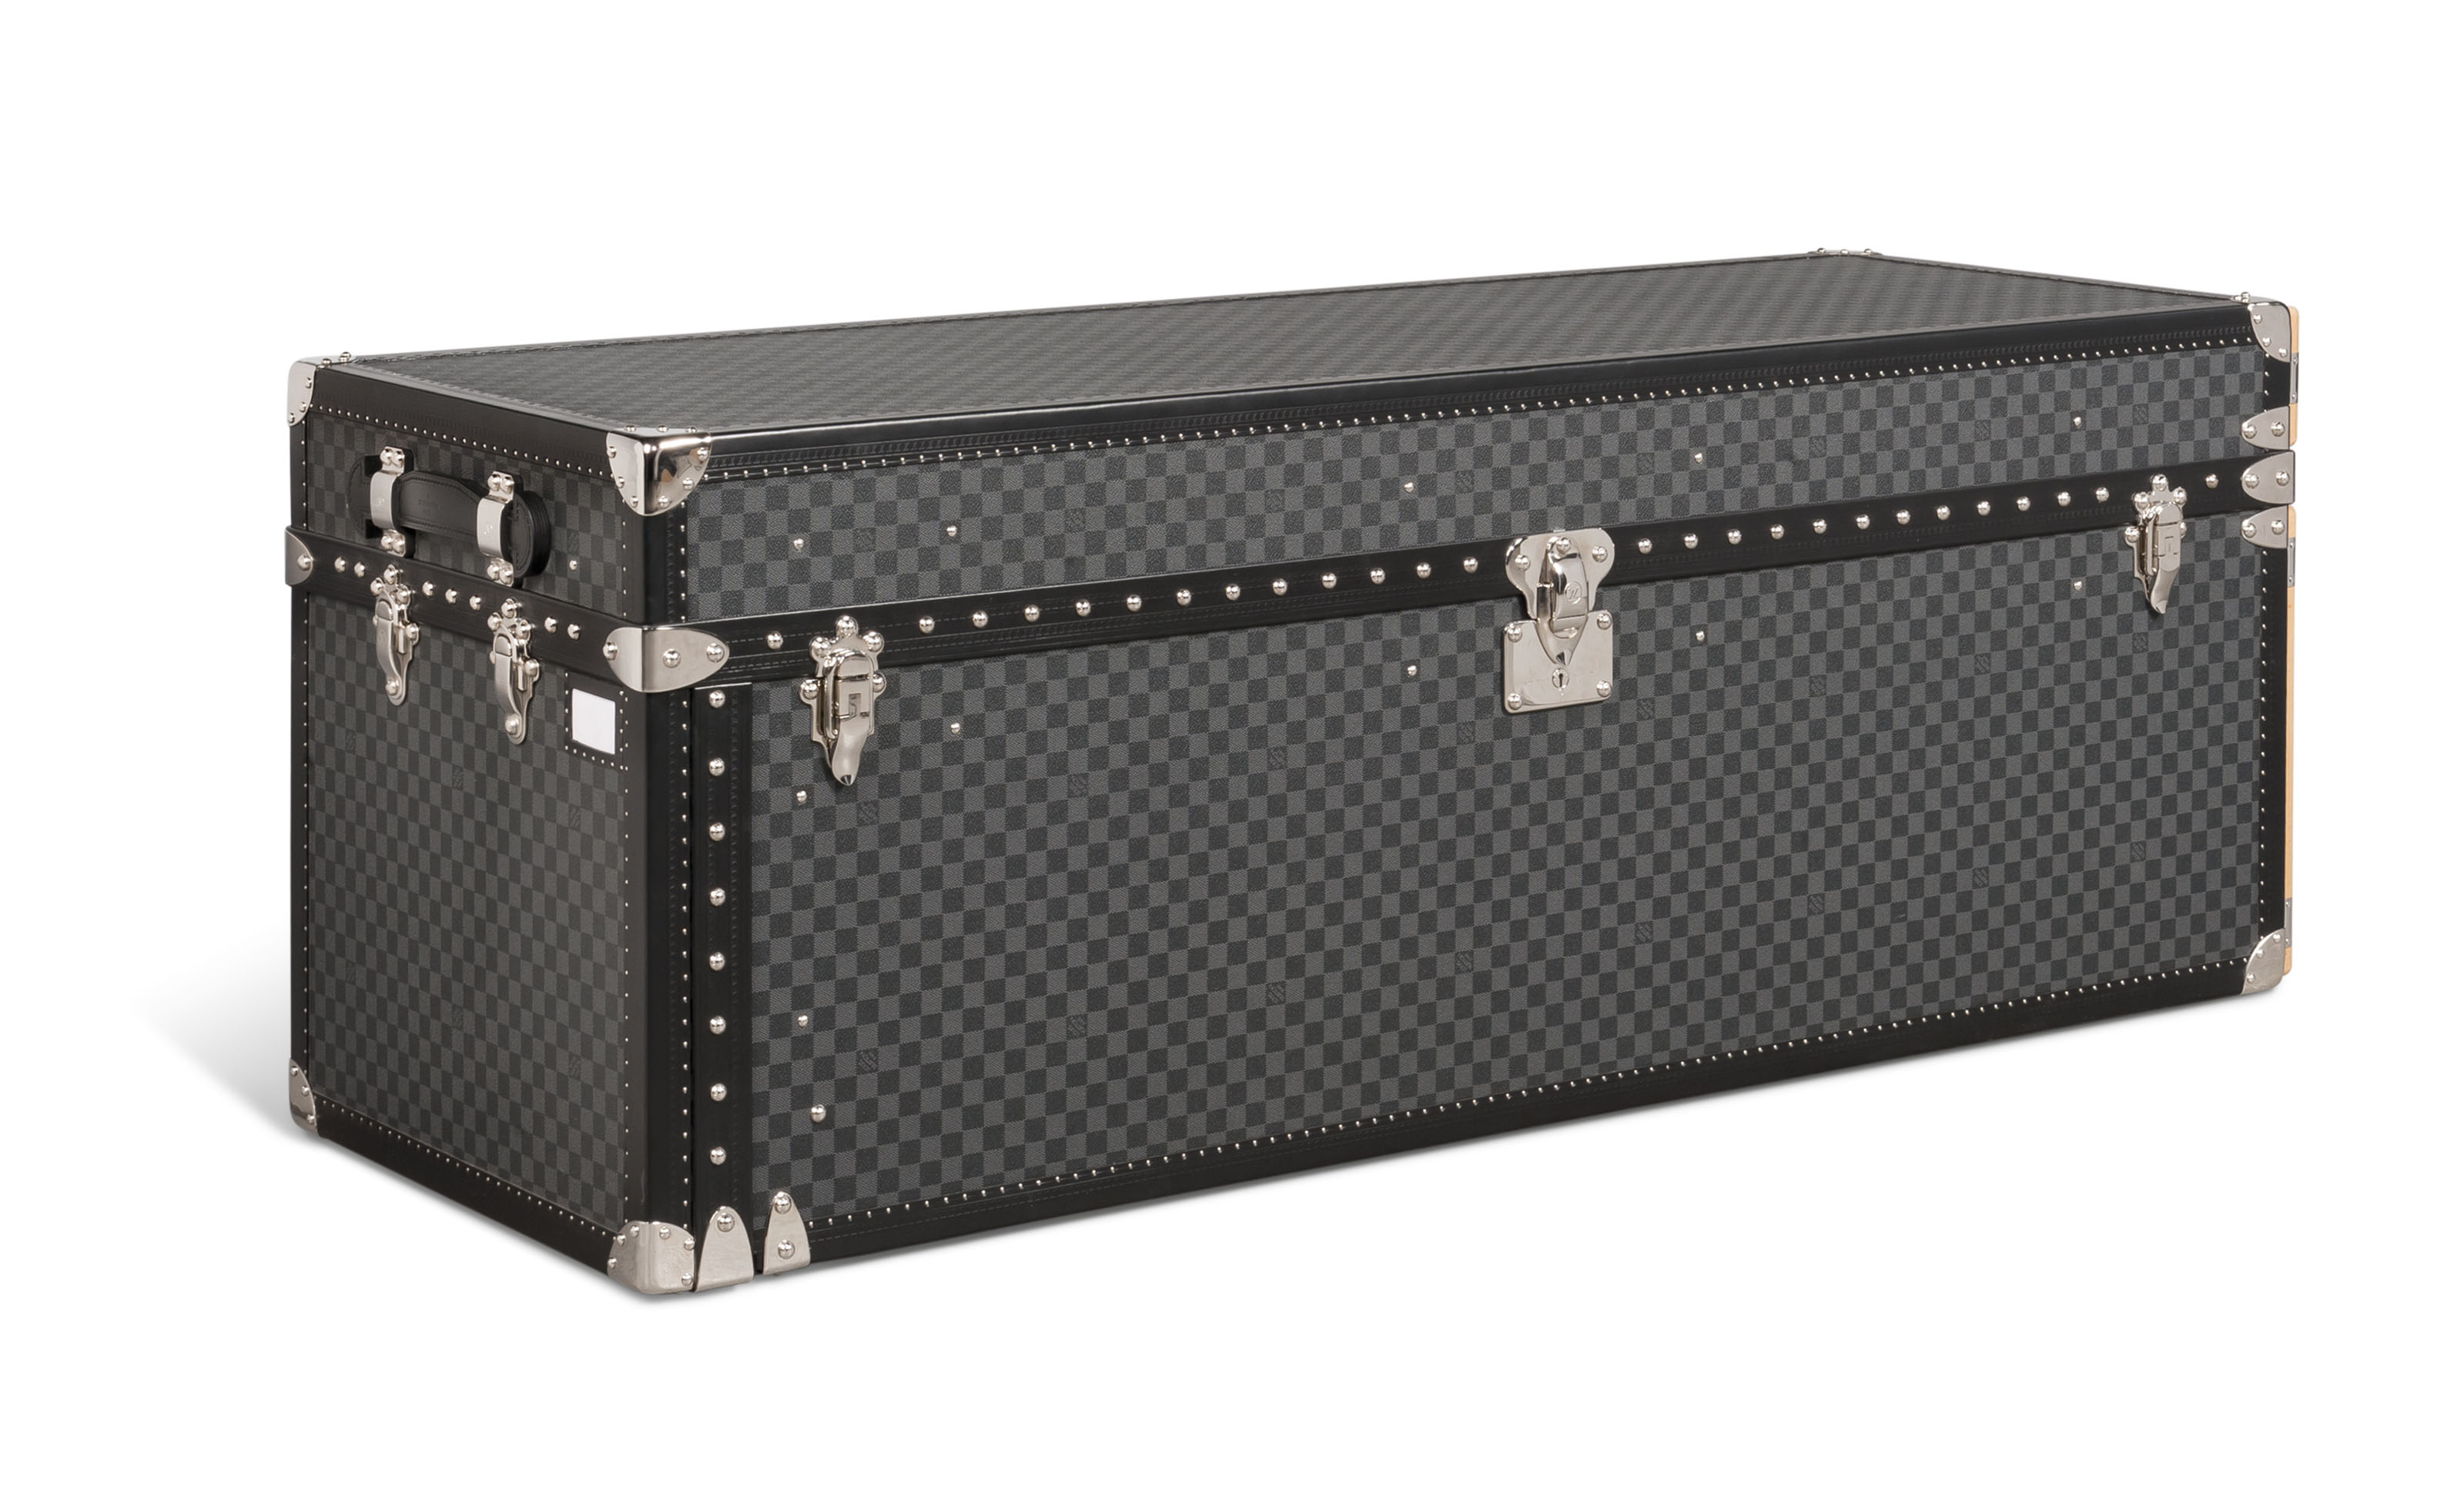 A CUSTOM GRAPHITE DAMIER CANVAS WATCH & JEWELLERY TRUNK